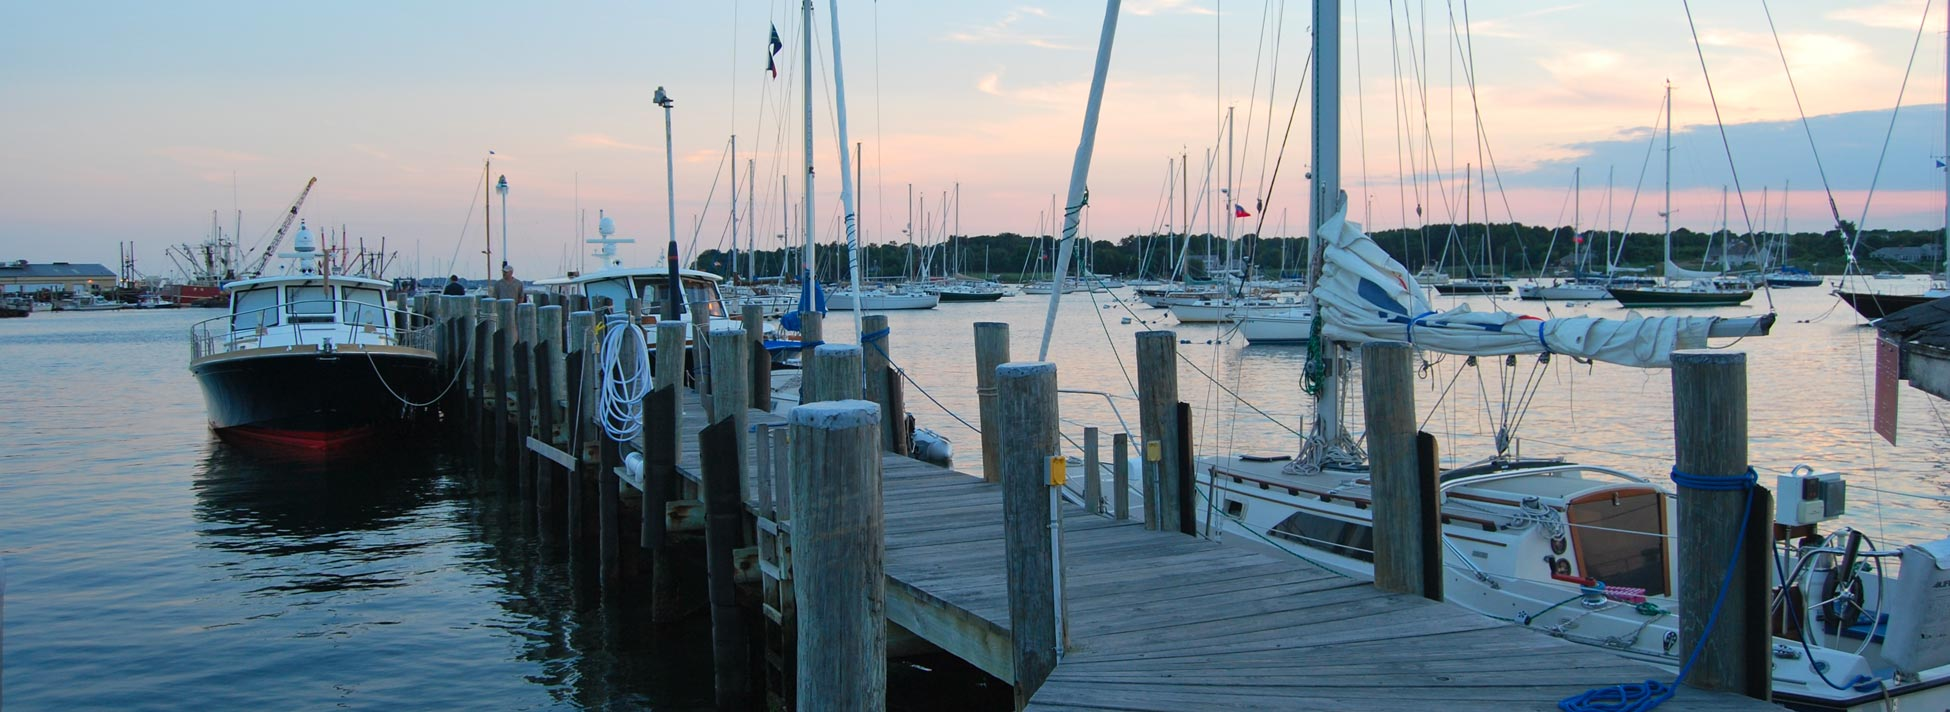 Photo of sailboats at dock with sunset sky in background